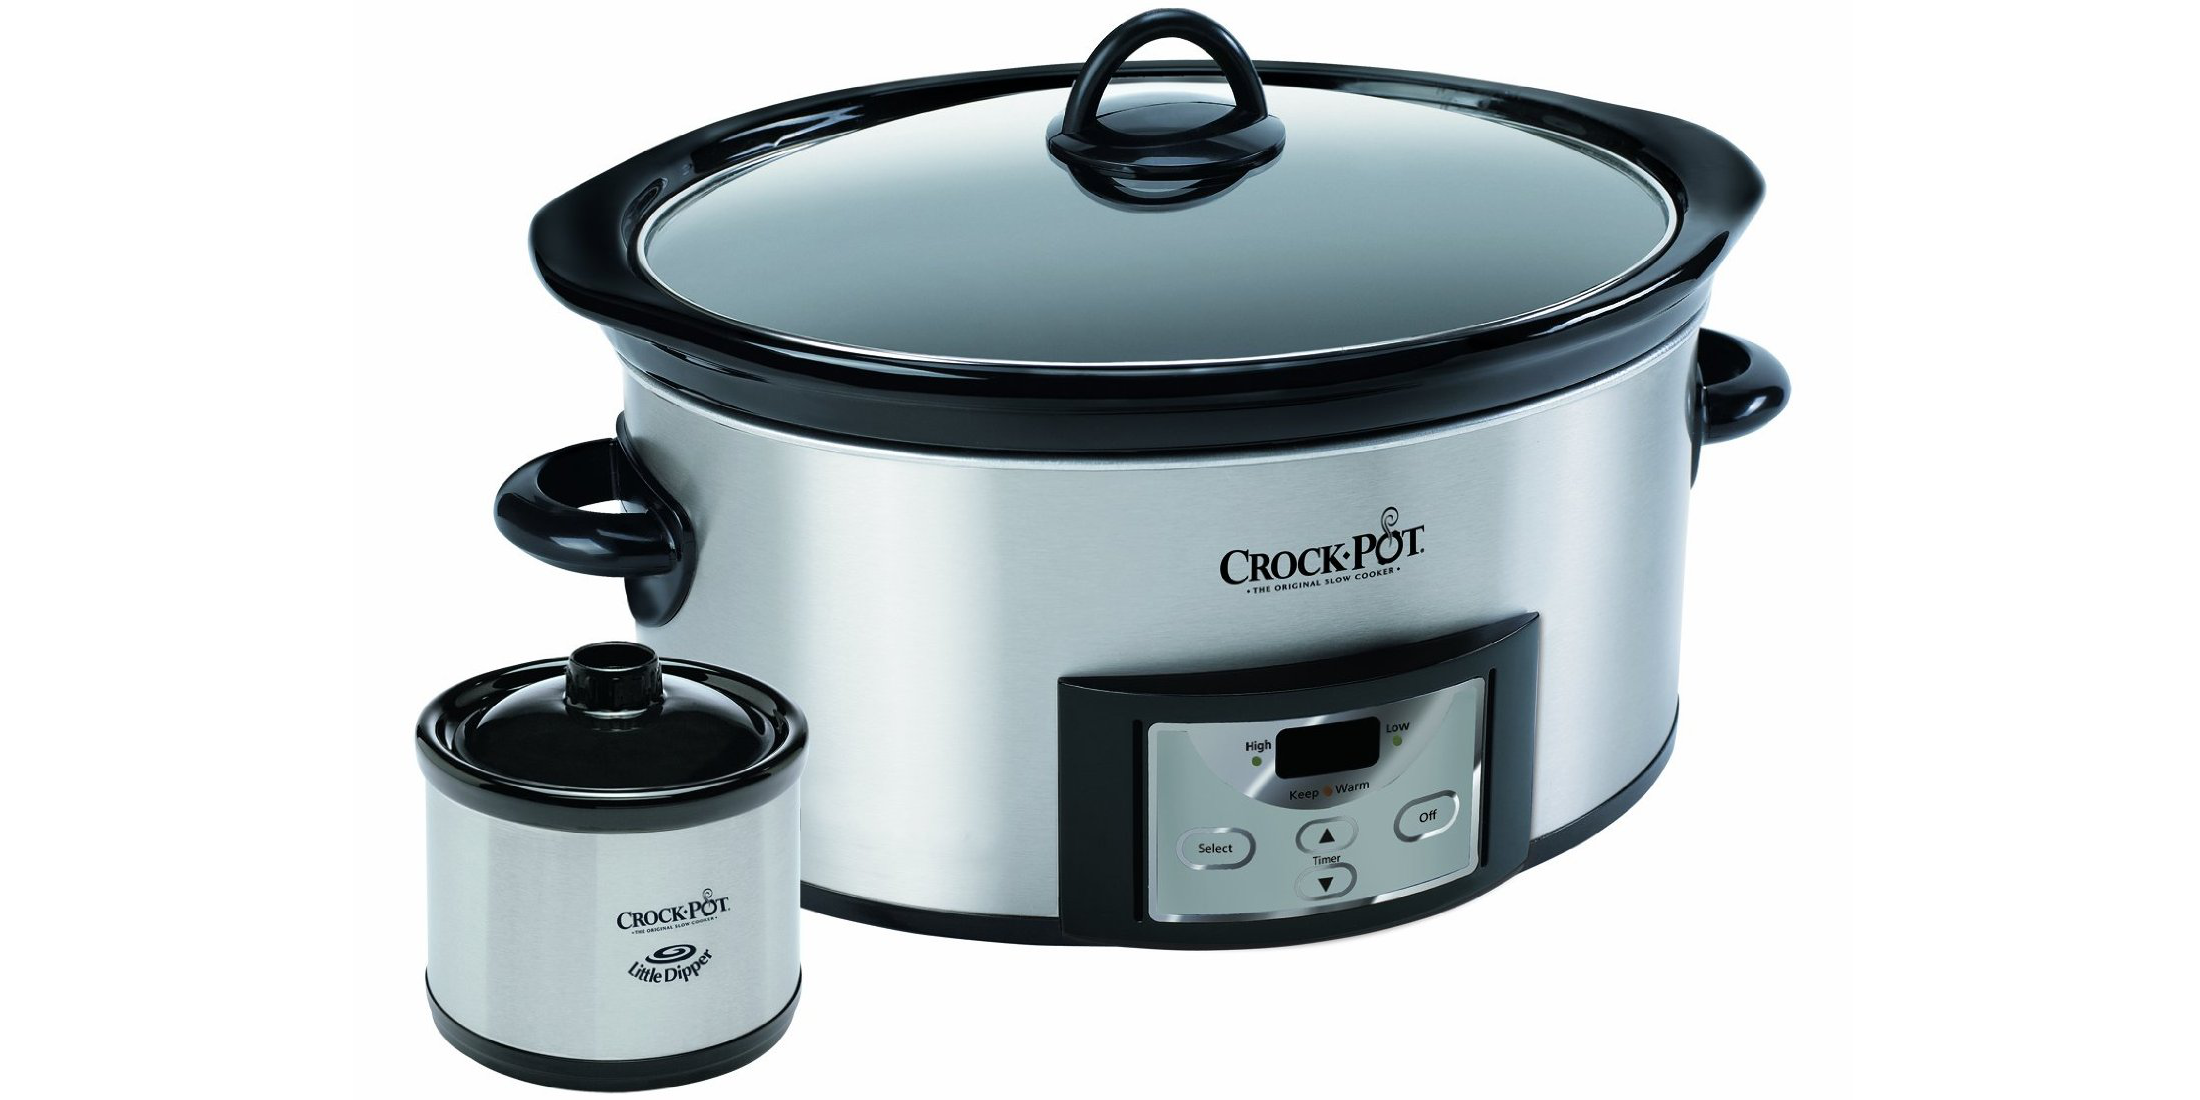 crock-pot-6-quart-countdown-oval-slow-cooker-with-dipper-in-stainless-steel-sccpvc605-s